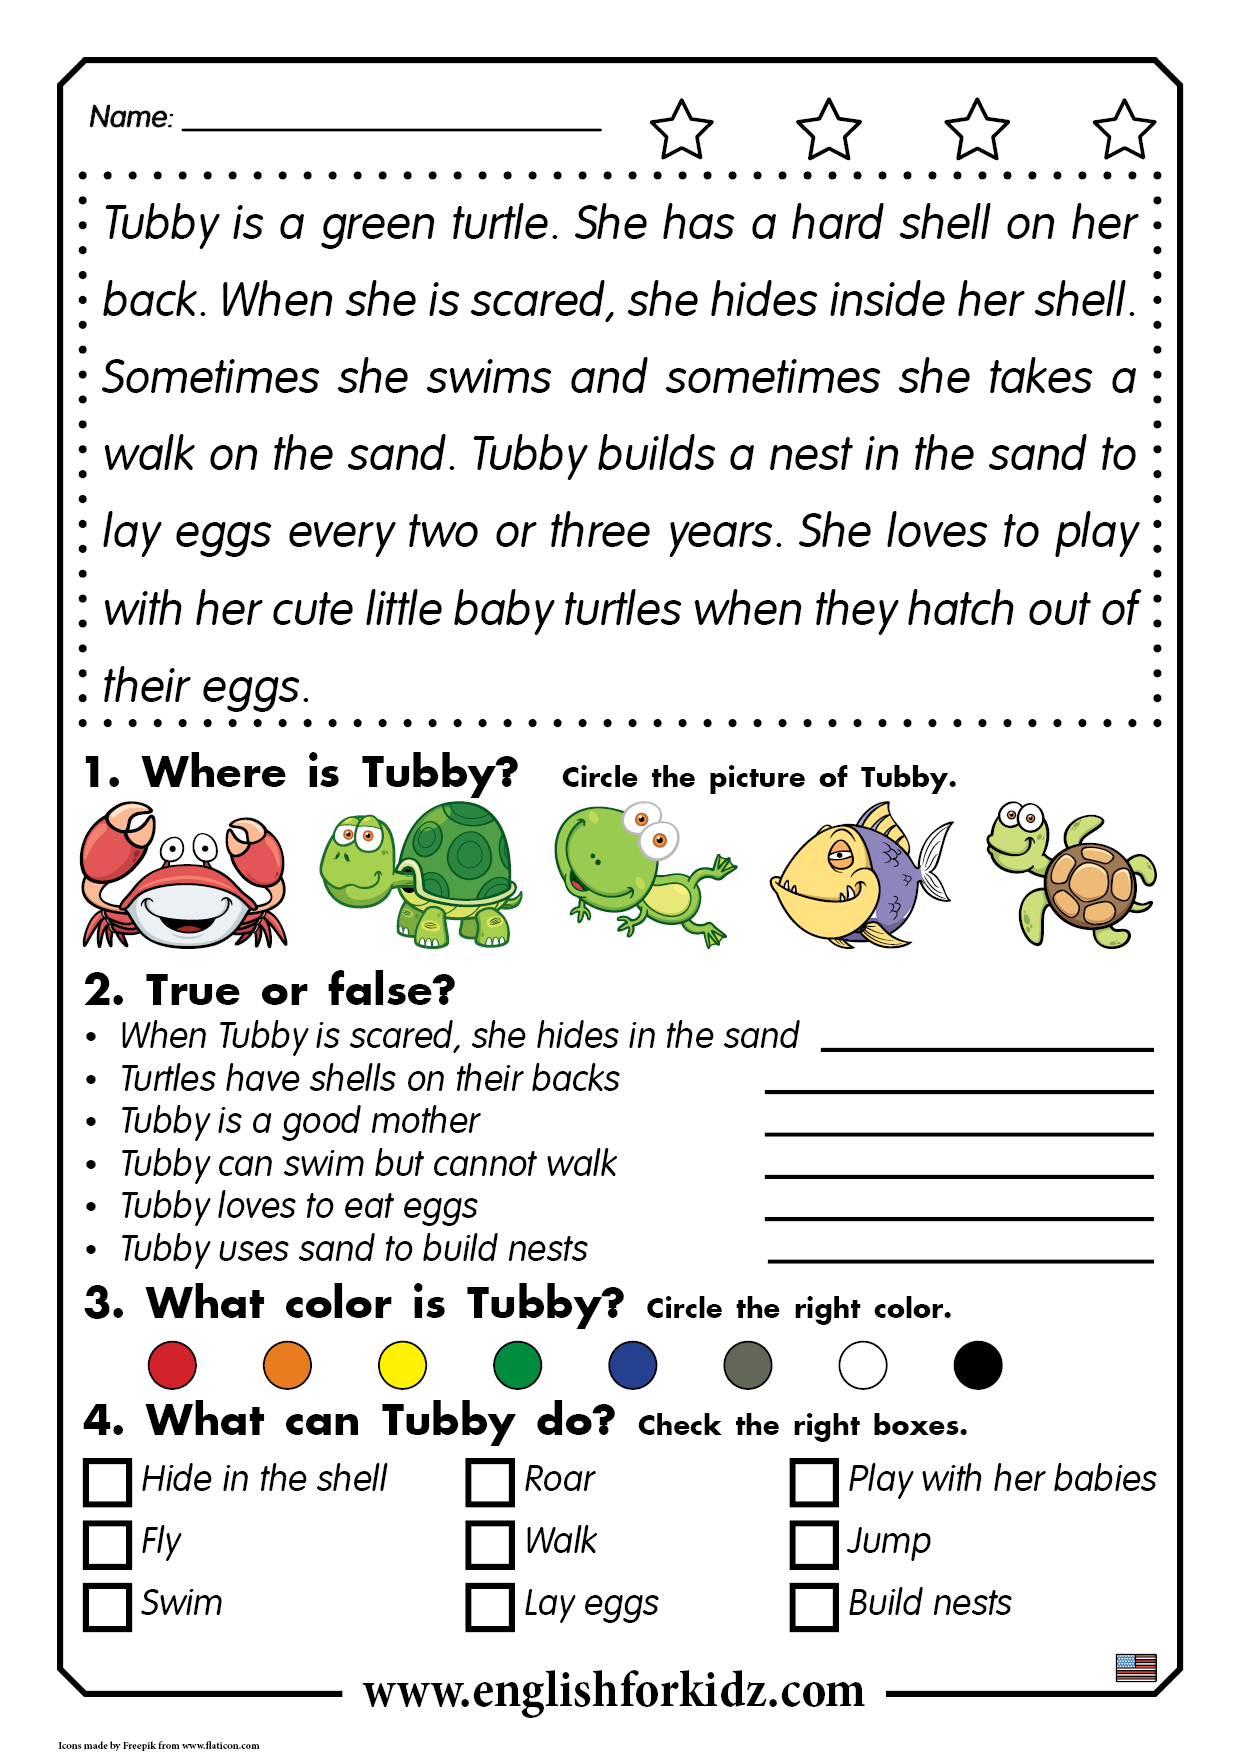 Reading Comprehension Passage For Children Learning